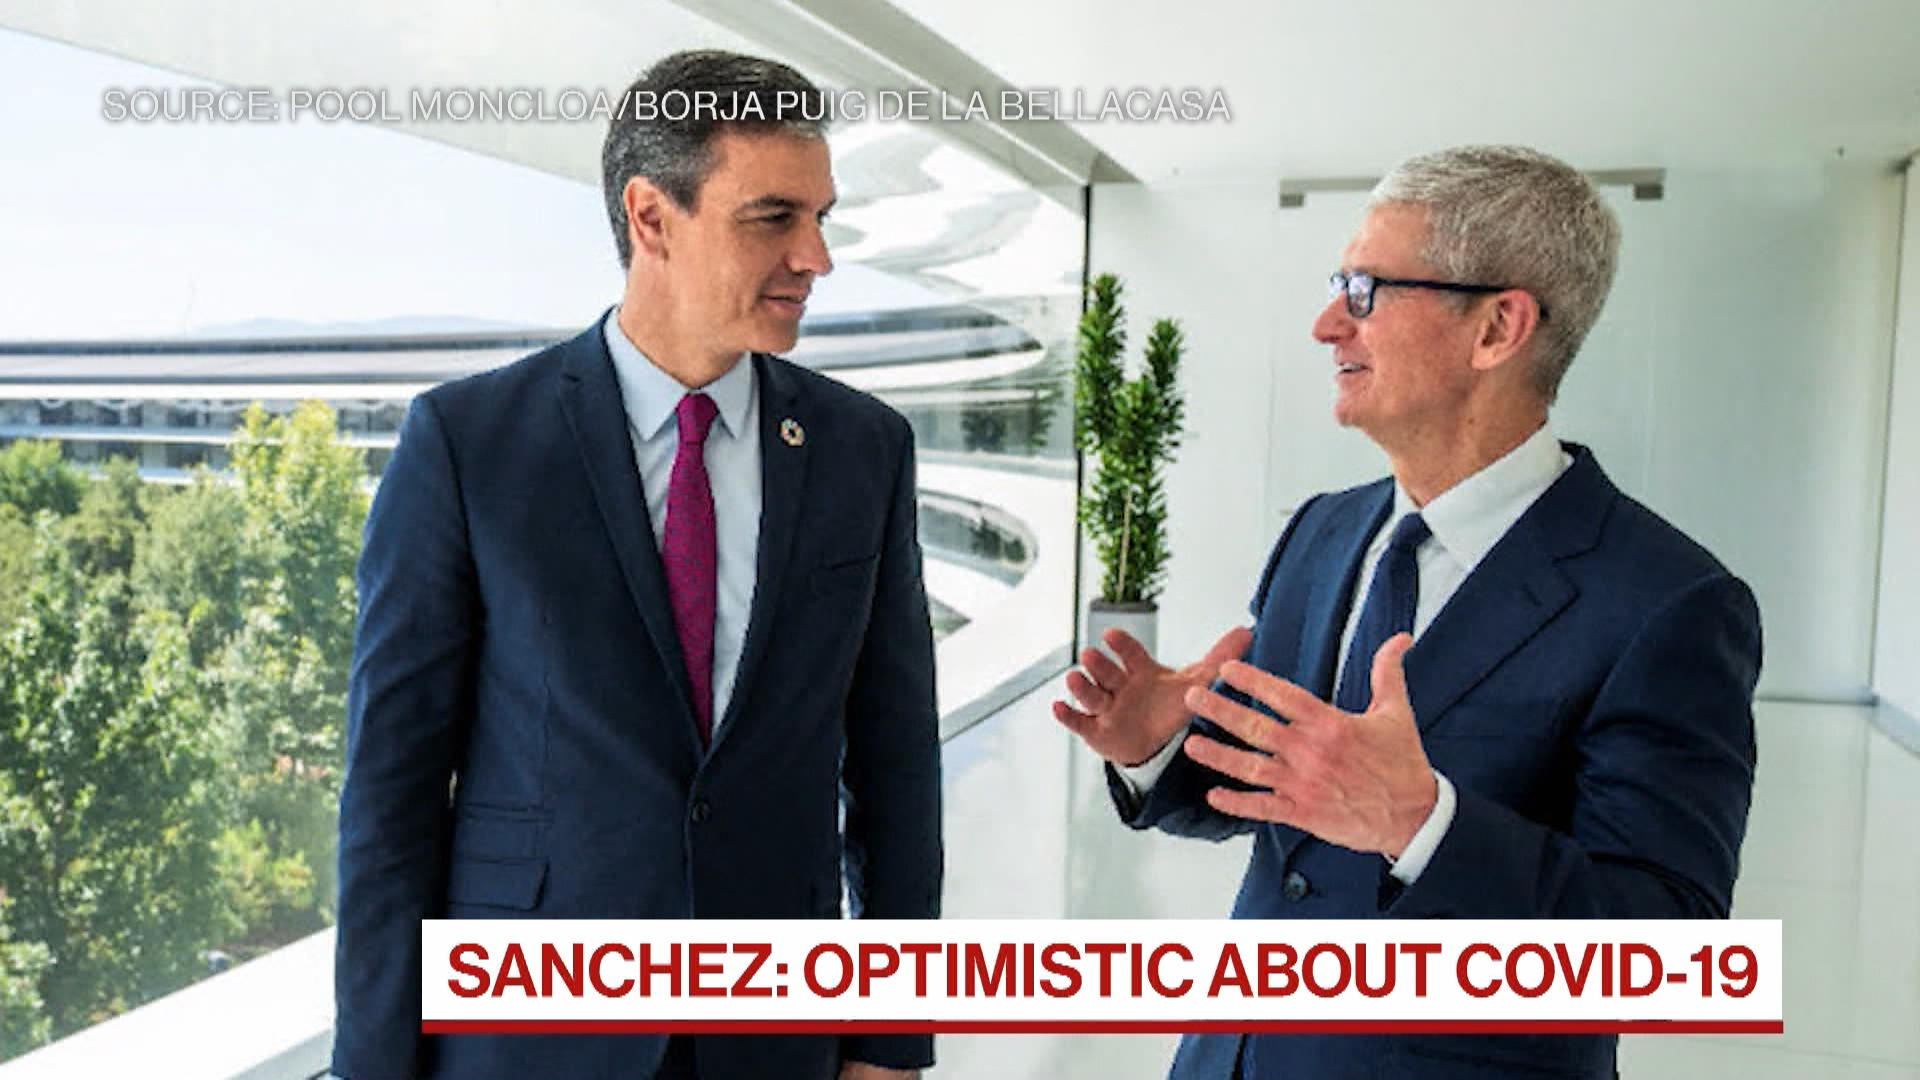 Spain's Prime Minister Comes to Silicon Valley